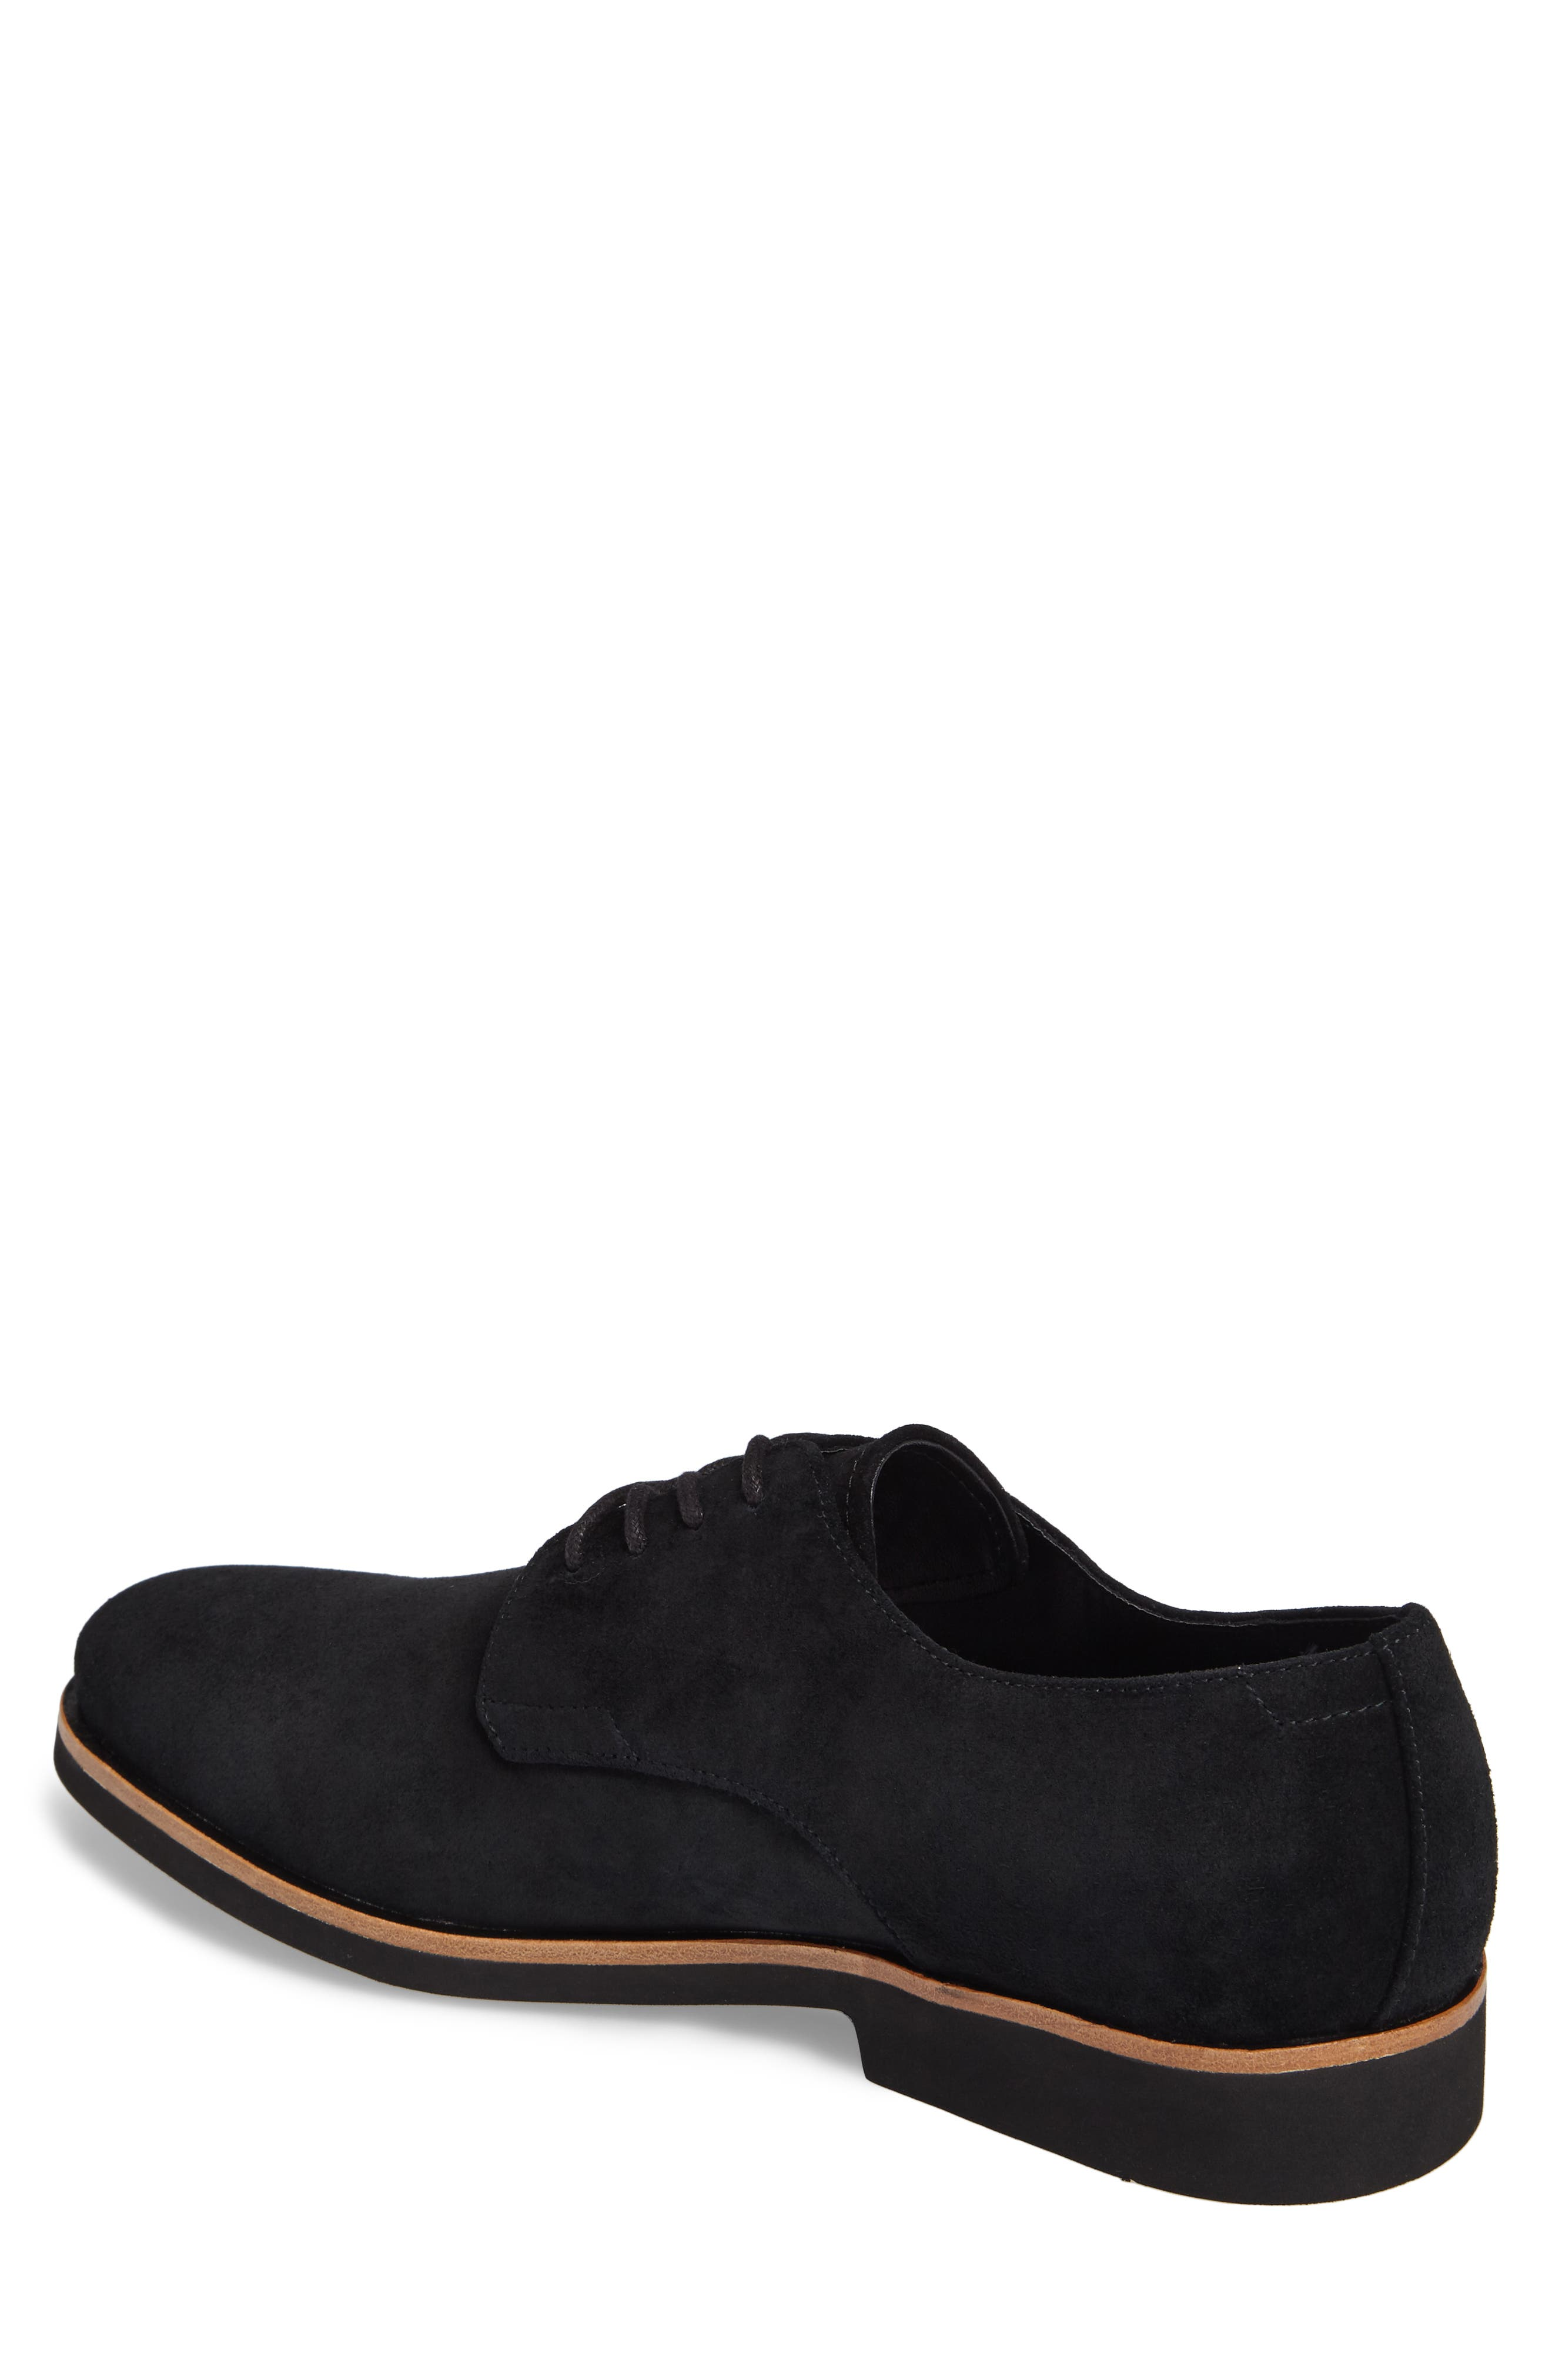 Faustino Plain Toe Derby,                             Alternate thumbnail 2, color,                             Black Suede